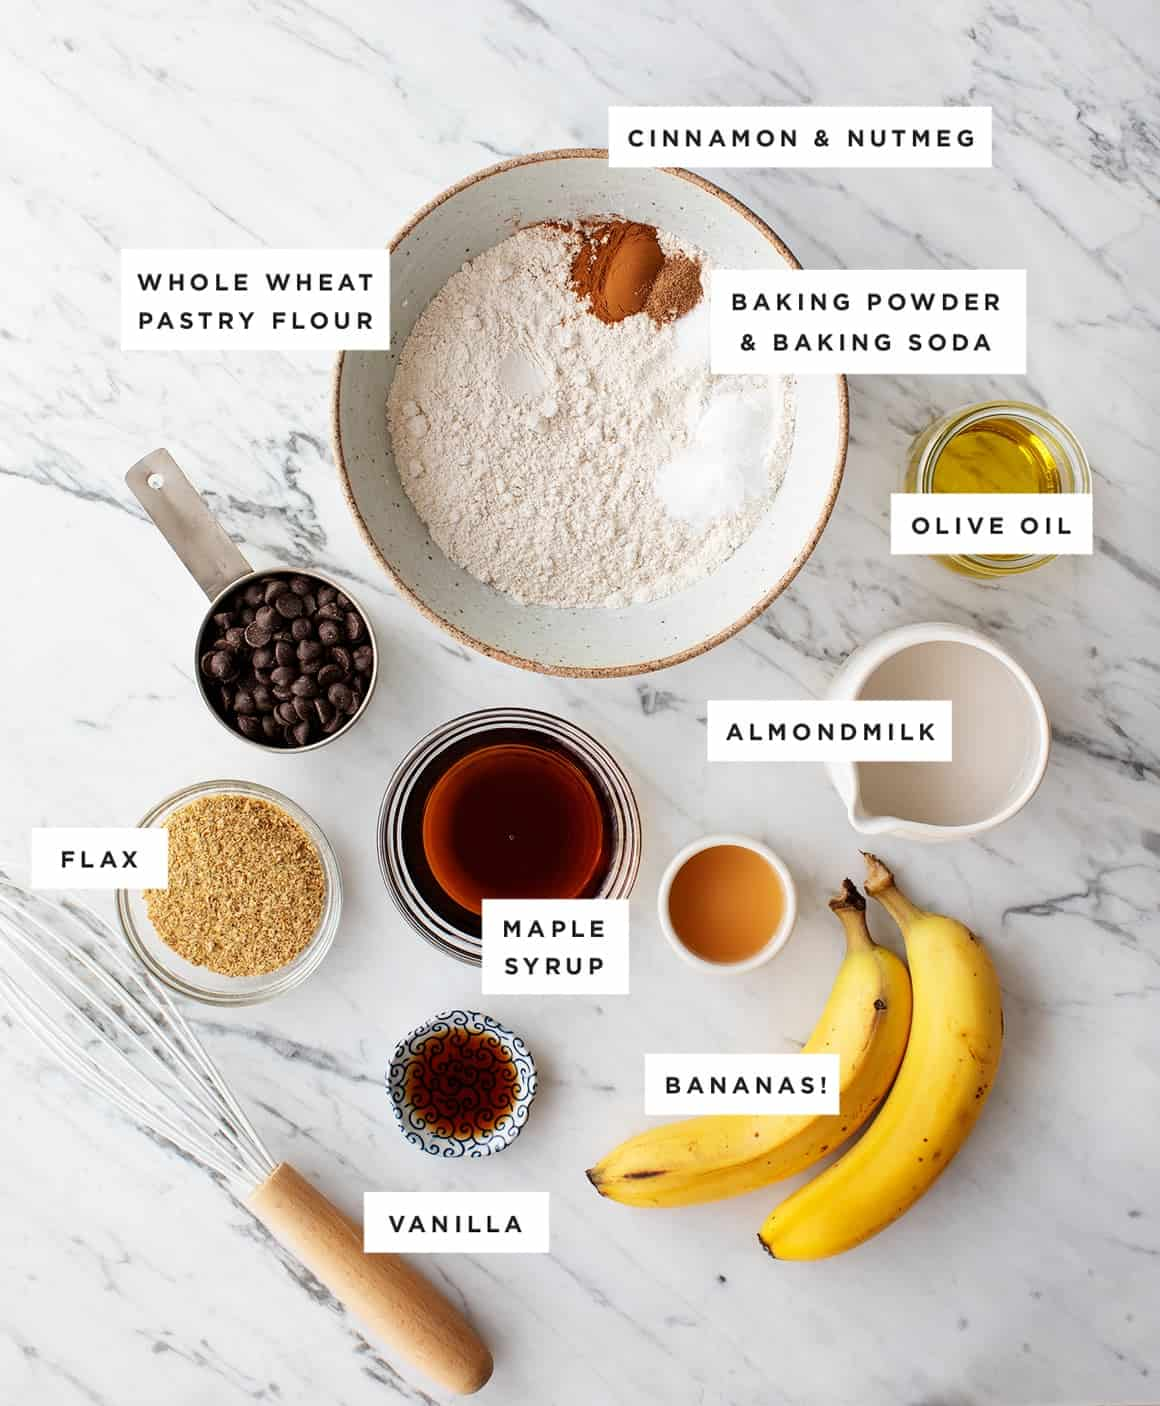 Banana Muffin Recipe Ingredients